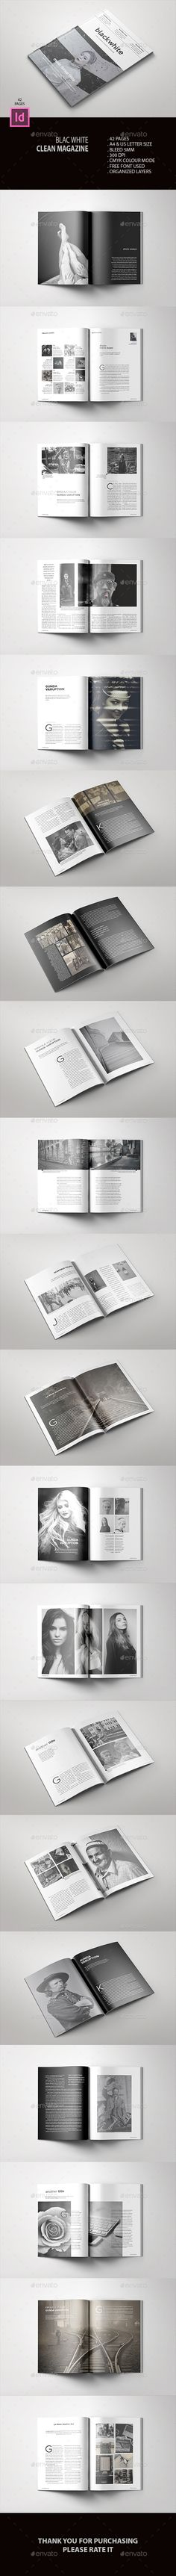 Black White Clean Magazine — InDesign INDD #art #design • Available here ➝ https://graphicriver.net/item/black-white-clean-magazine/20731763?ref=pxcr